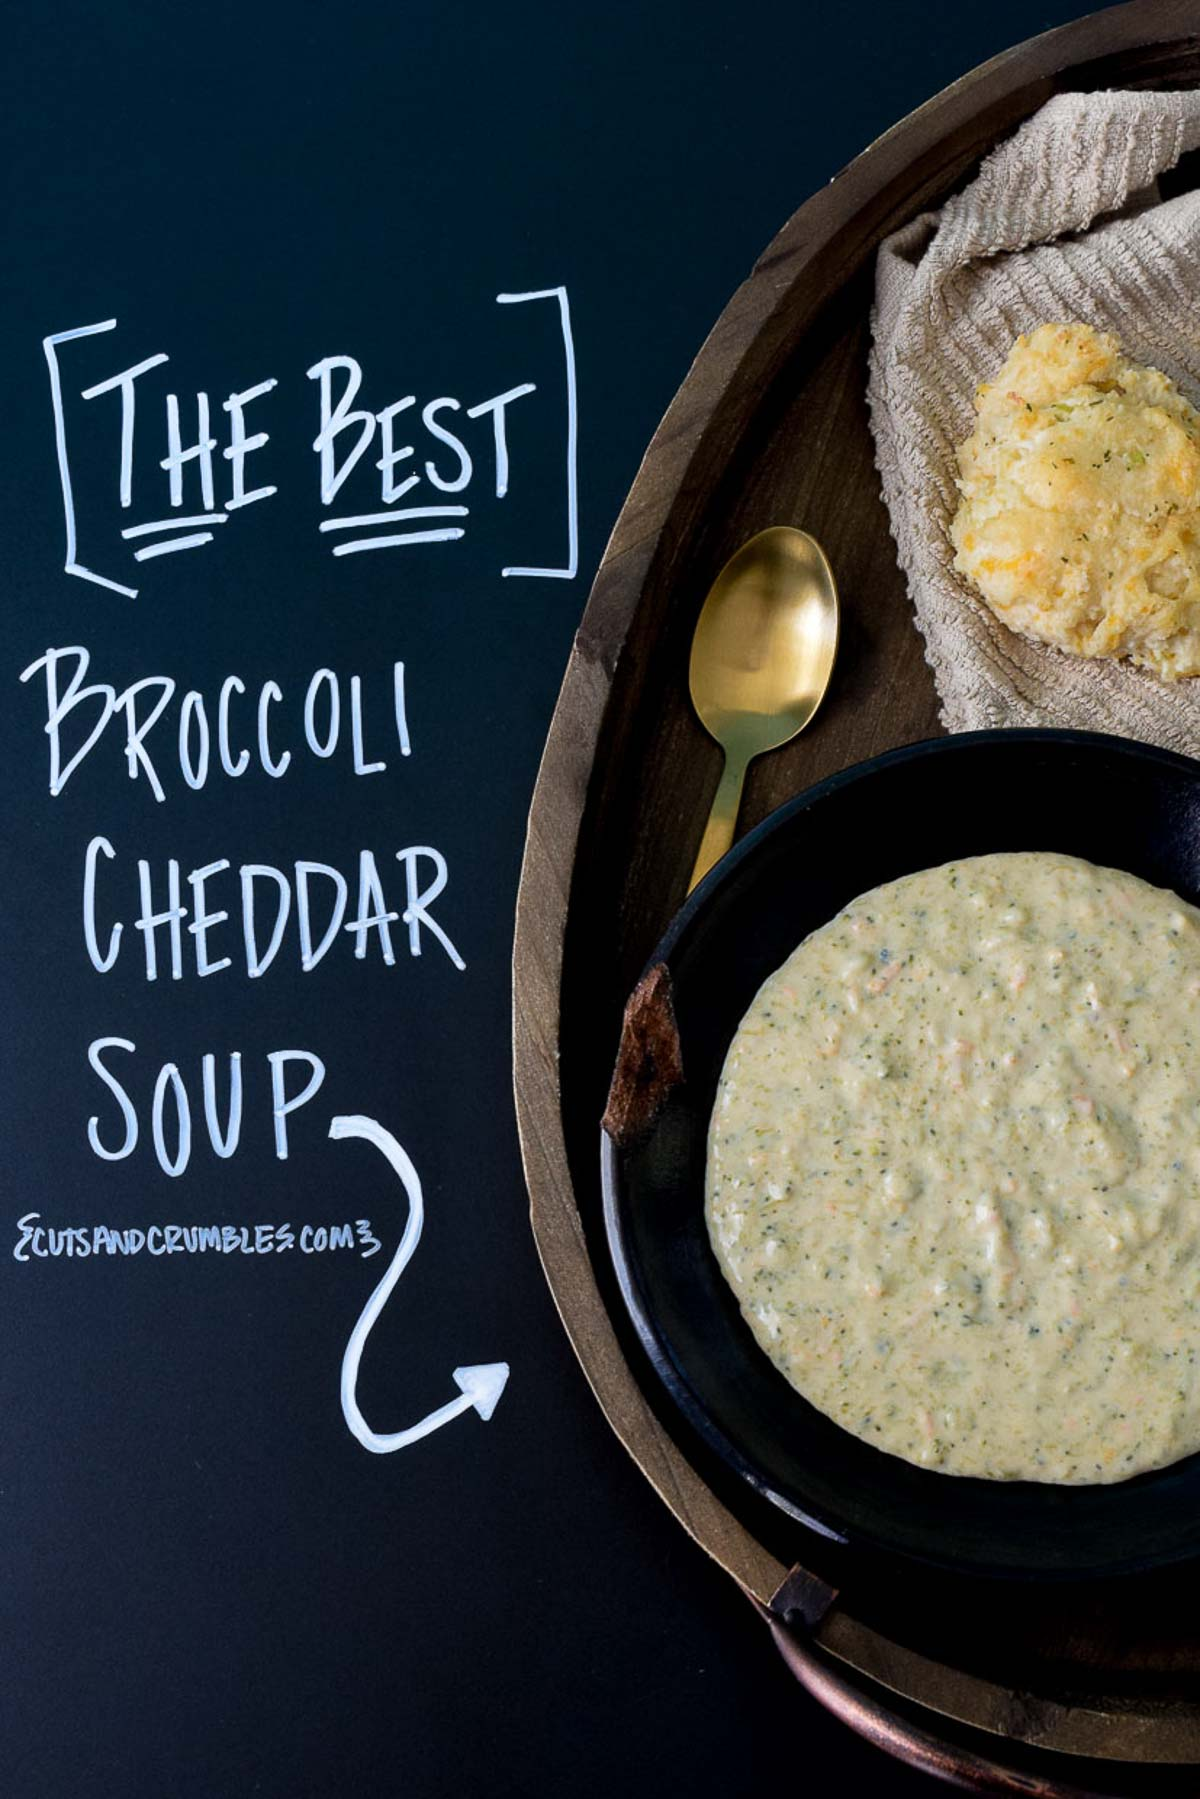 Broccoli Cheddar Soup served in a black bowl with title written on chalkboard